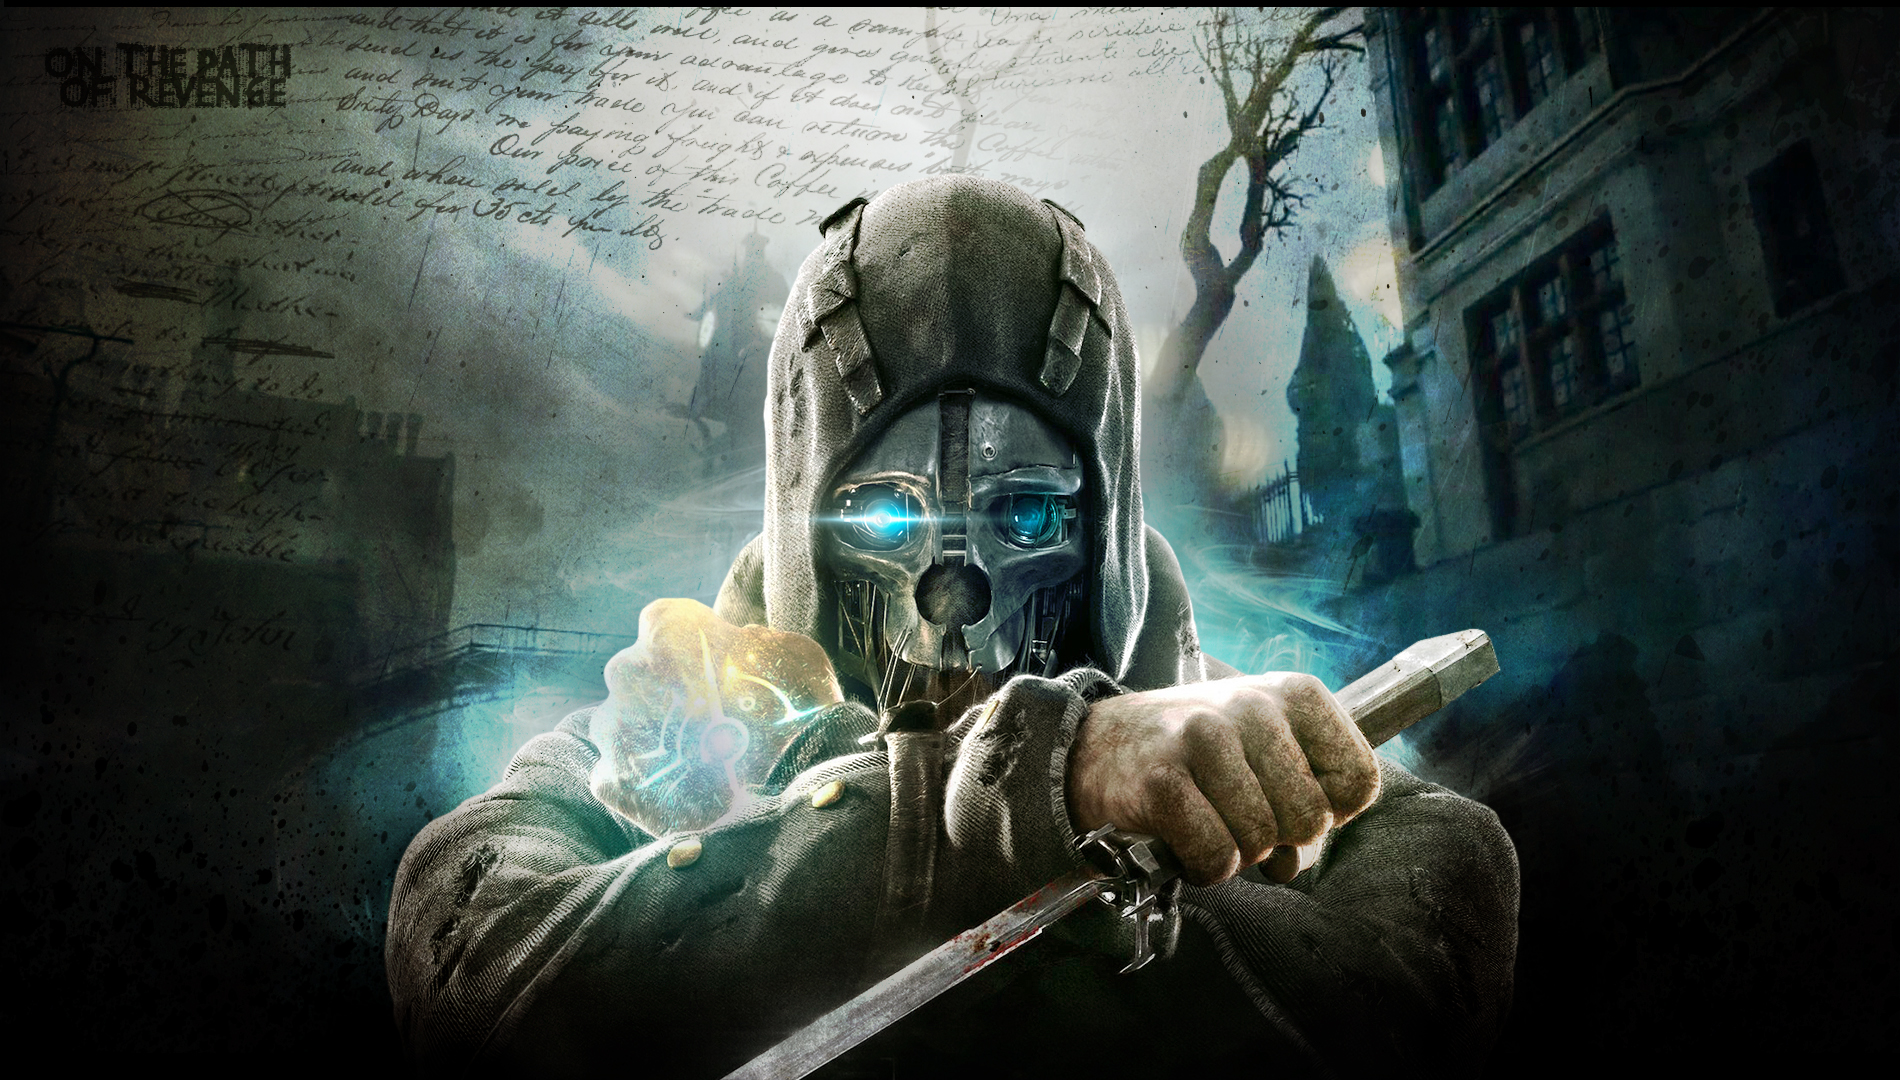 dishonored-warrior-sci-fi-futuristic-mask-weapons-knife-text-wallpaper-1.jpg - Dishonored игра Dishonored